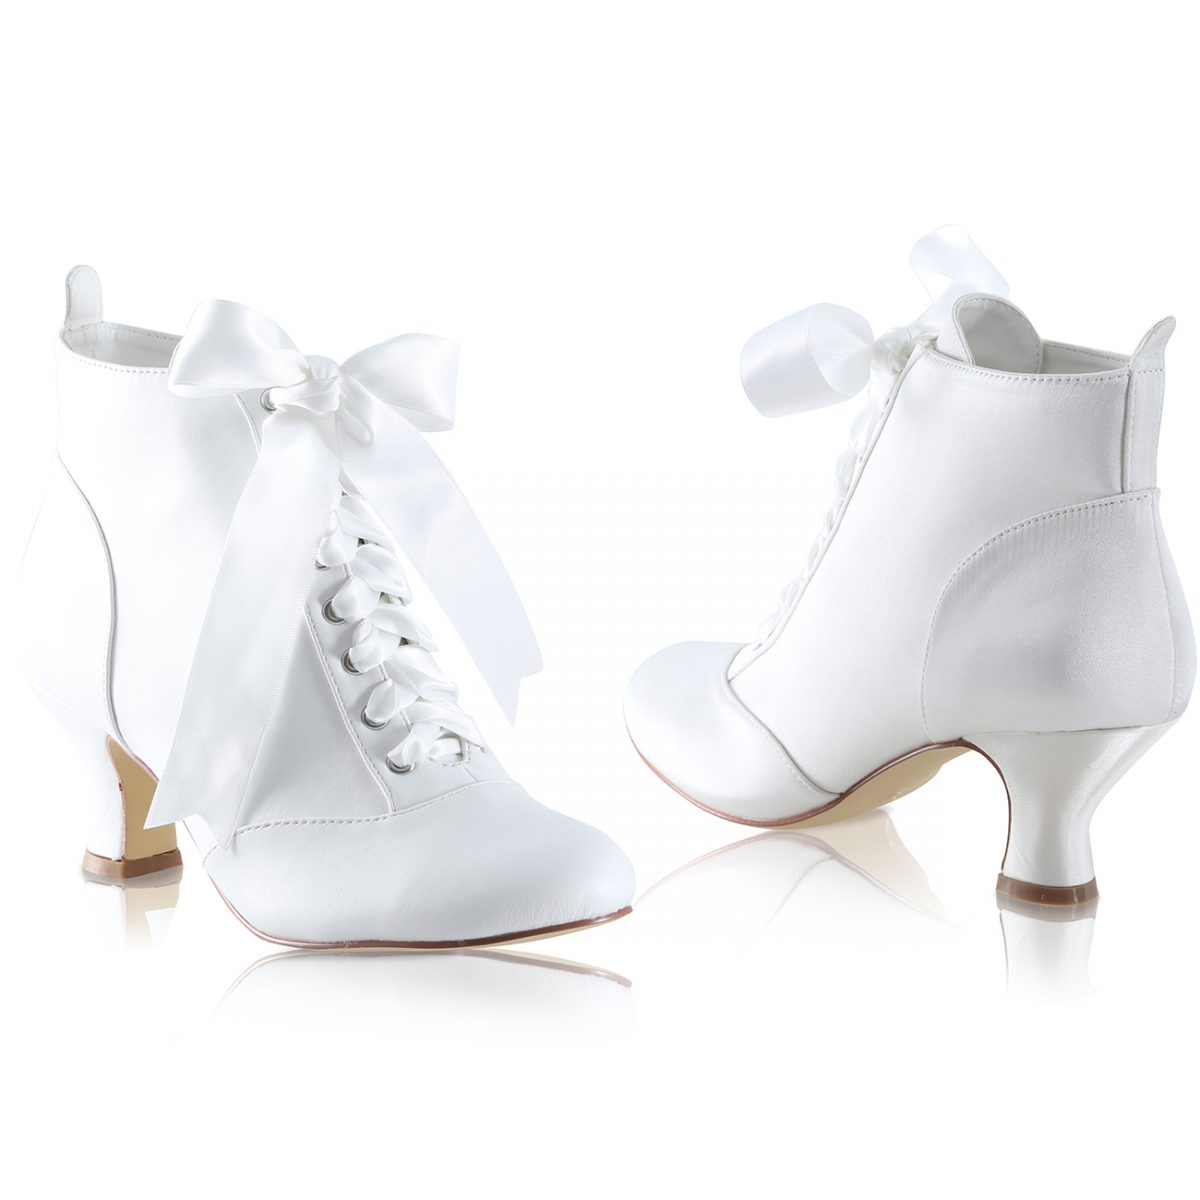 Perfect Bridal Norah Boots - Leatherette